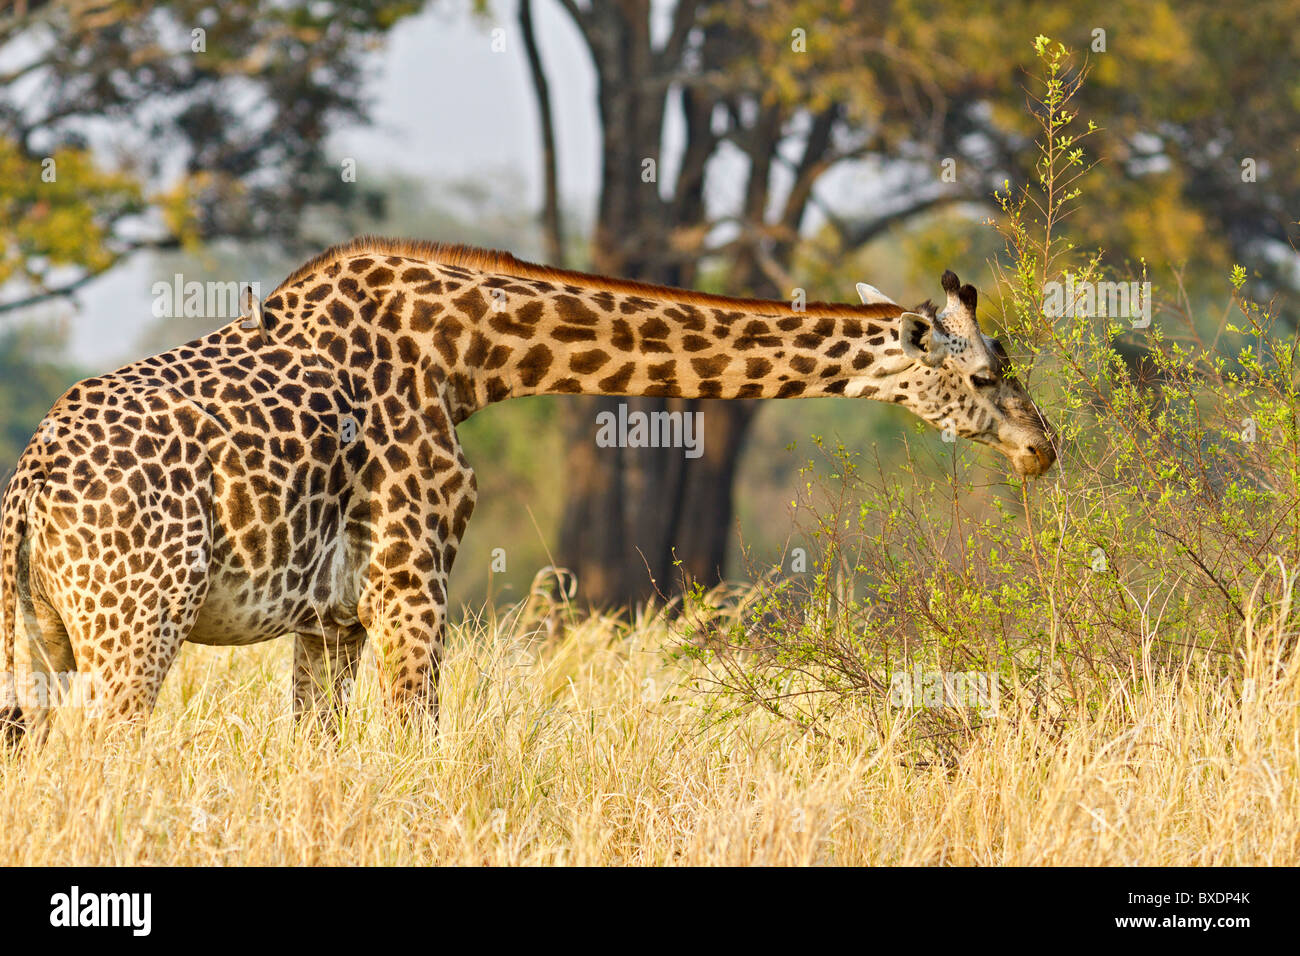 Giraffe with bird on its back, seen on safari in South Luangwa National Park, Zambia, Africa. - Stock Image